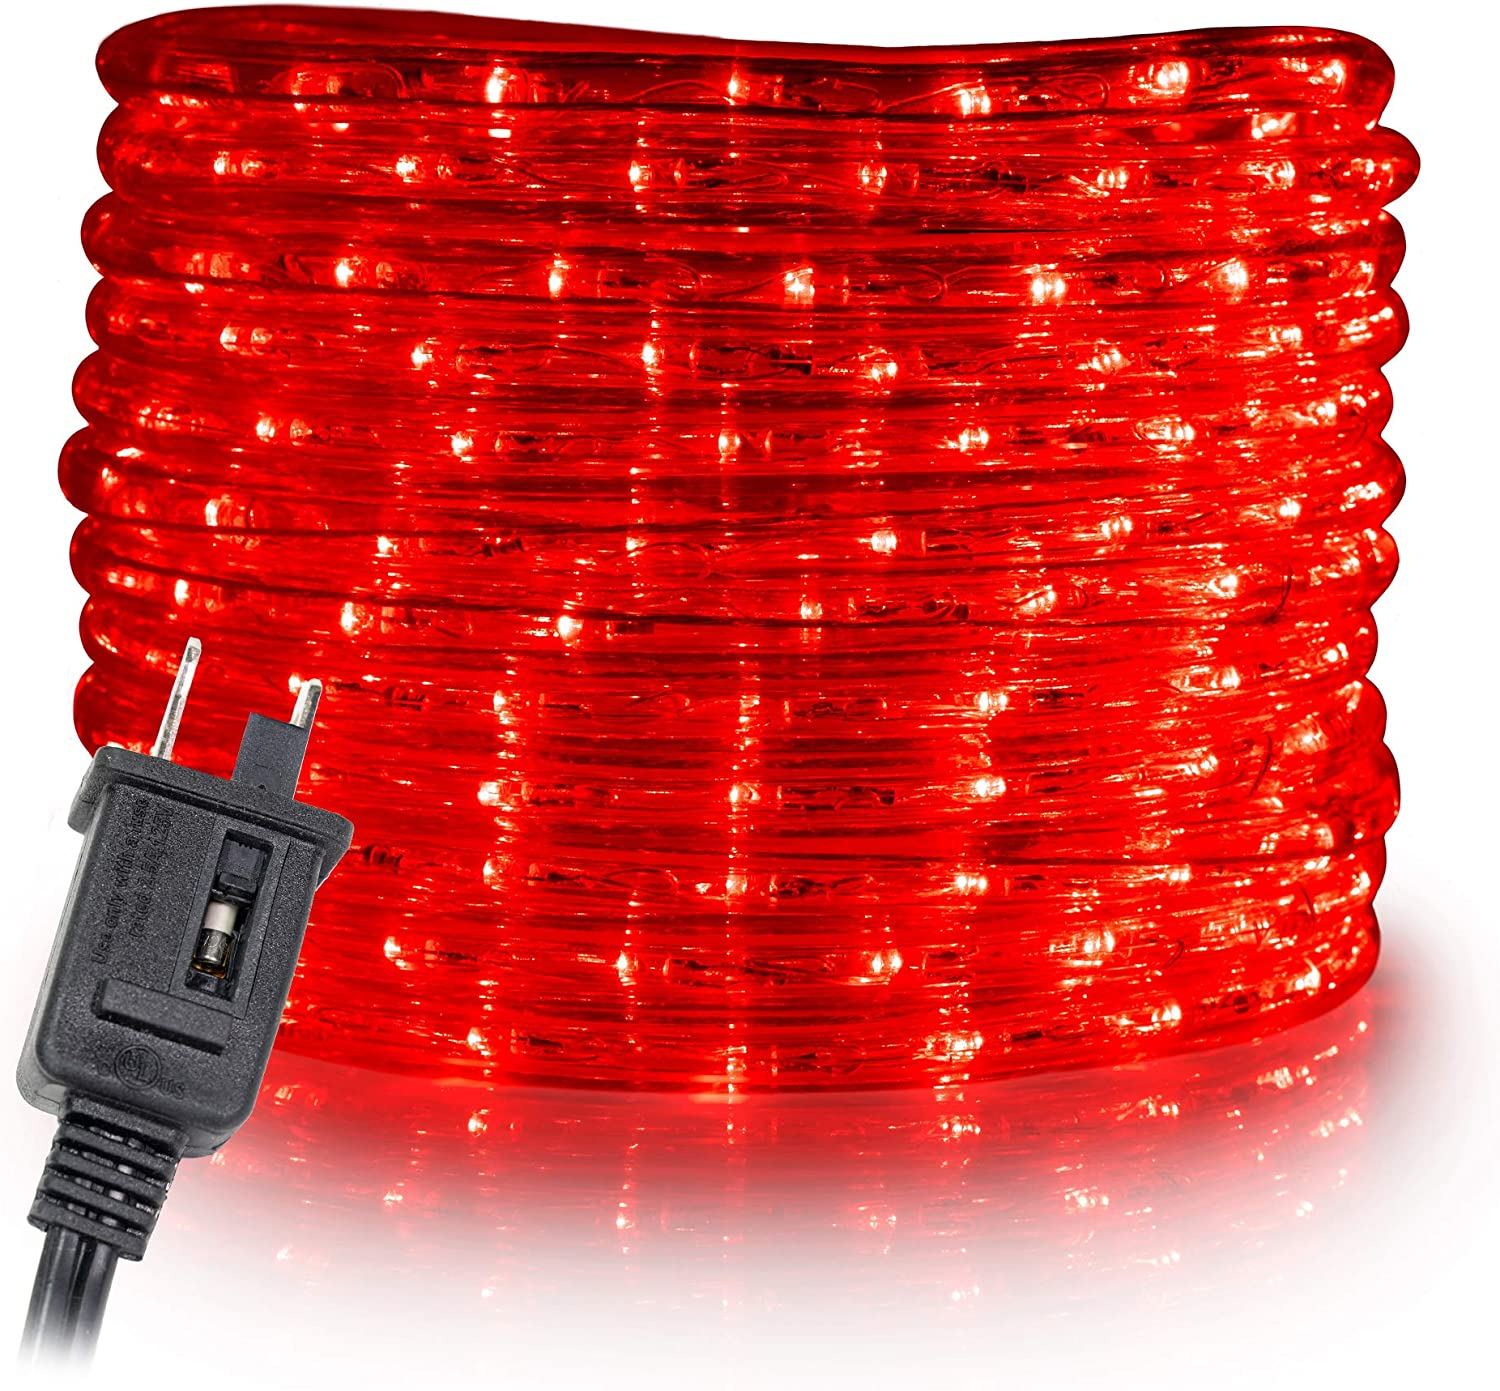 WYZworks 50 ft Red PRE-Assembled LED Rope Lights - 2 Wire Christmas Holiday Decoration Indoor/Outdoor Lighting | UL Certified